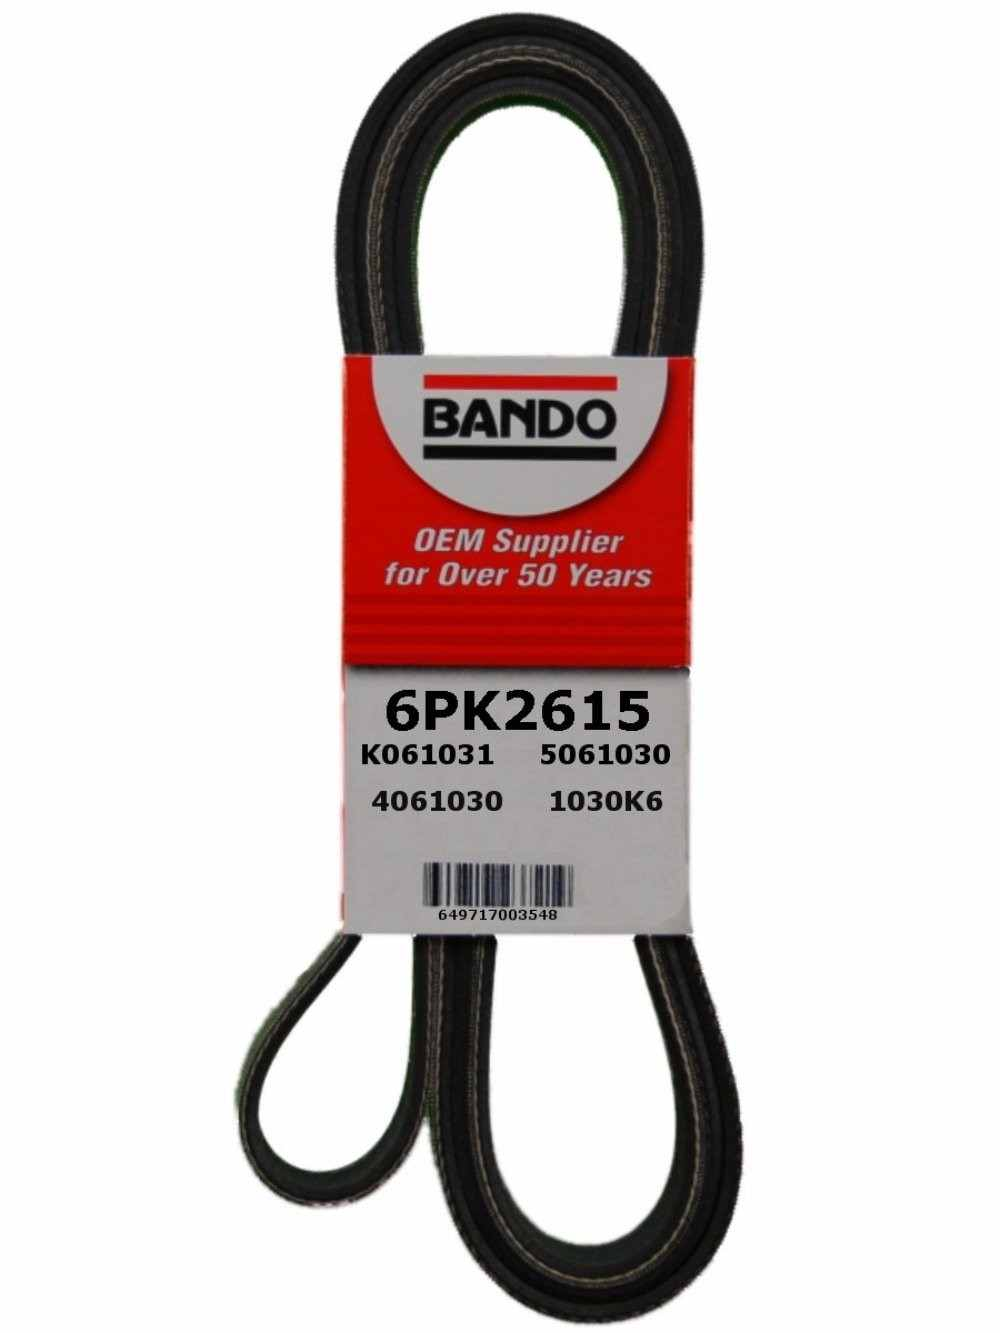 BANDO - Rib Ace Precision Engineered V-Ribbed Belt (Water Pump, Alternator, Air Conditioning and Power Steering) - BWO 6PK2615